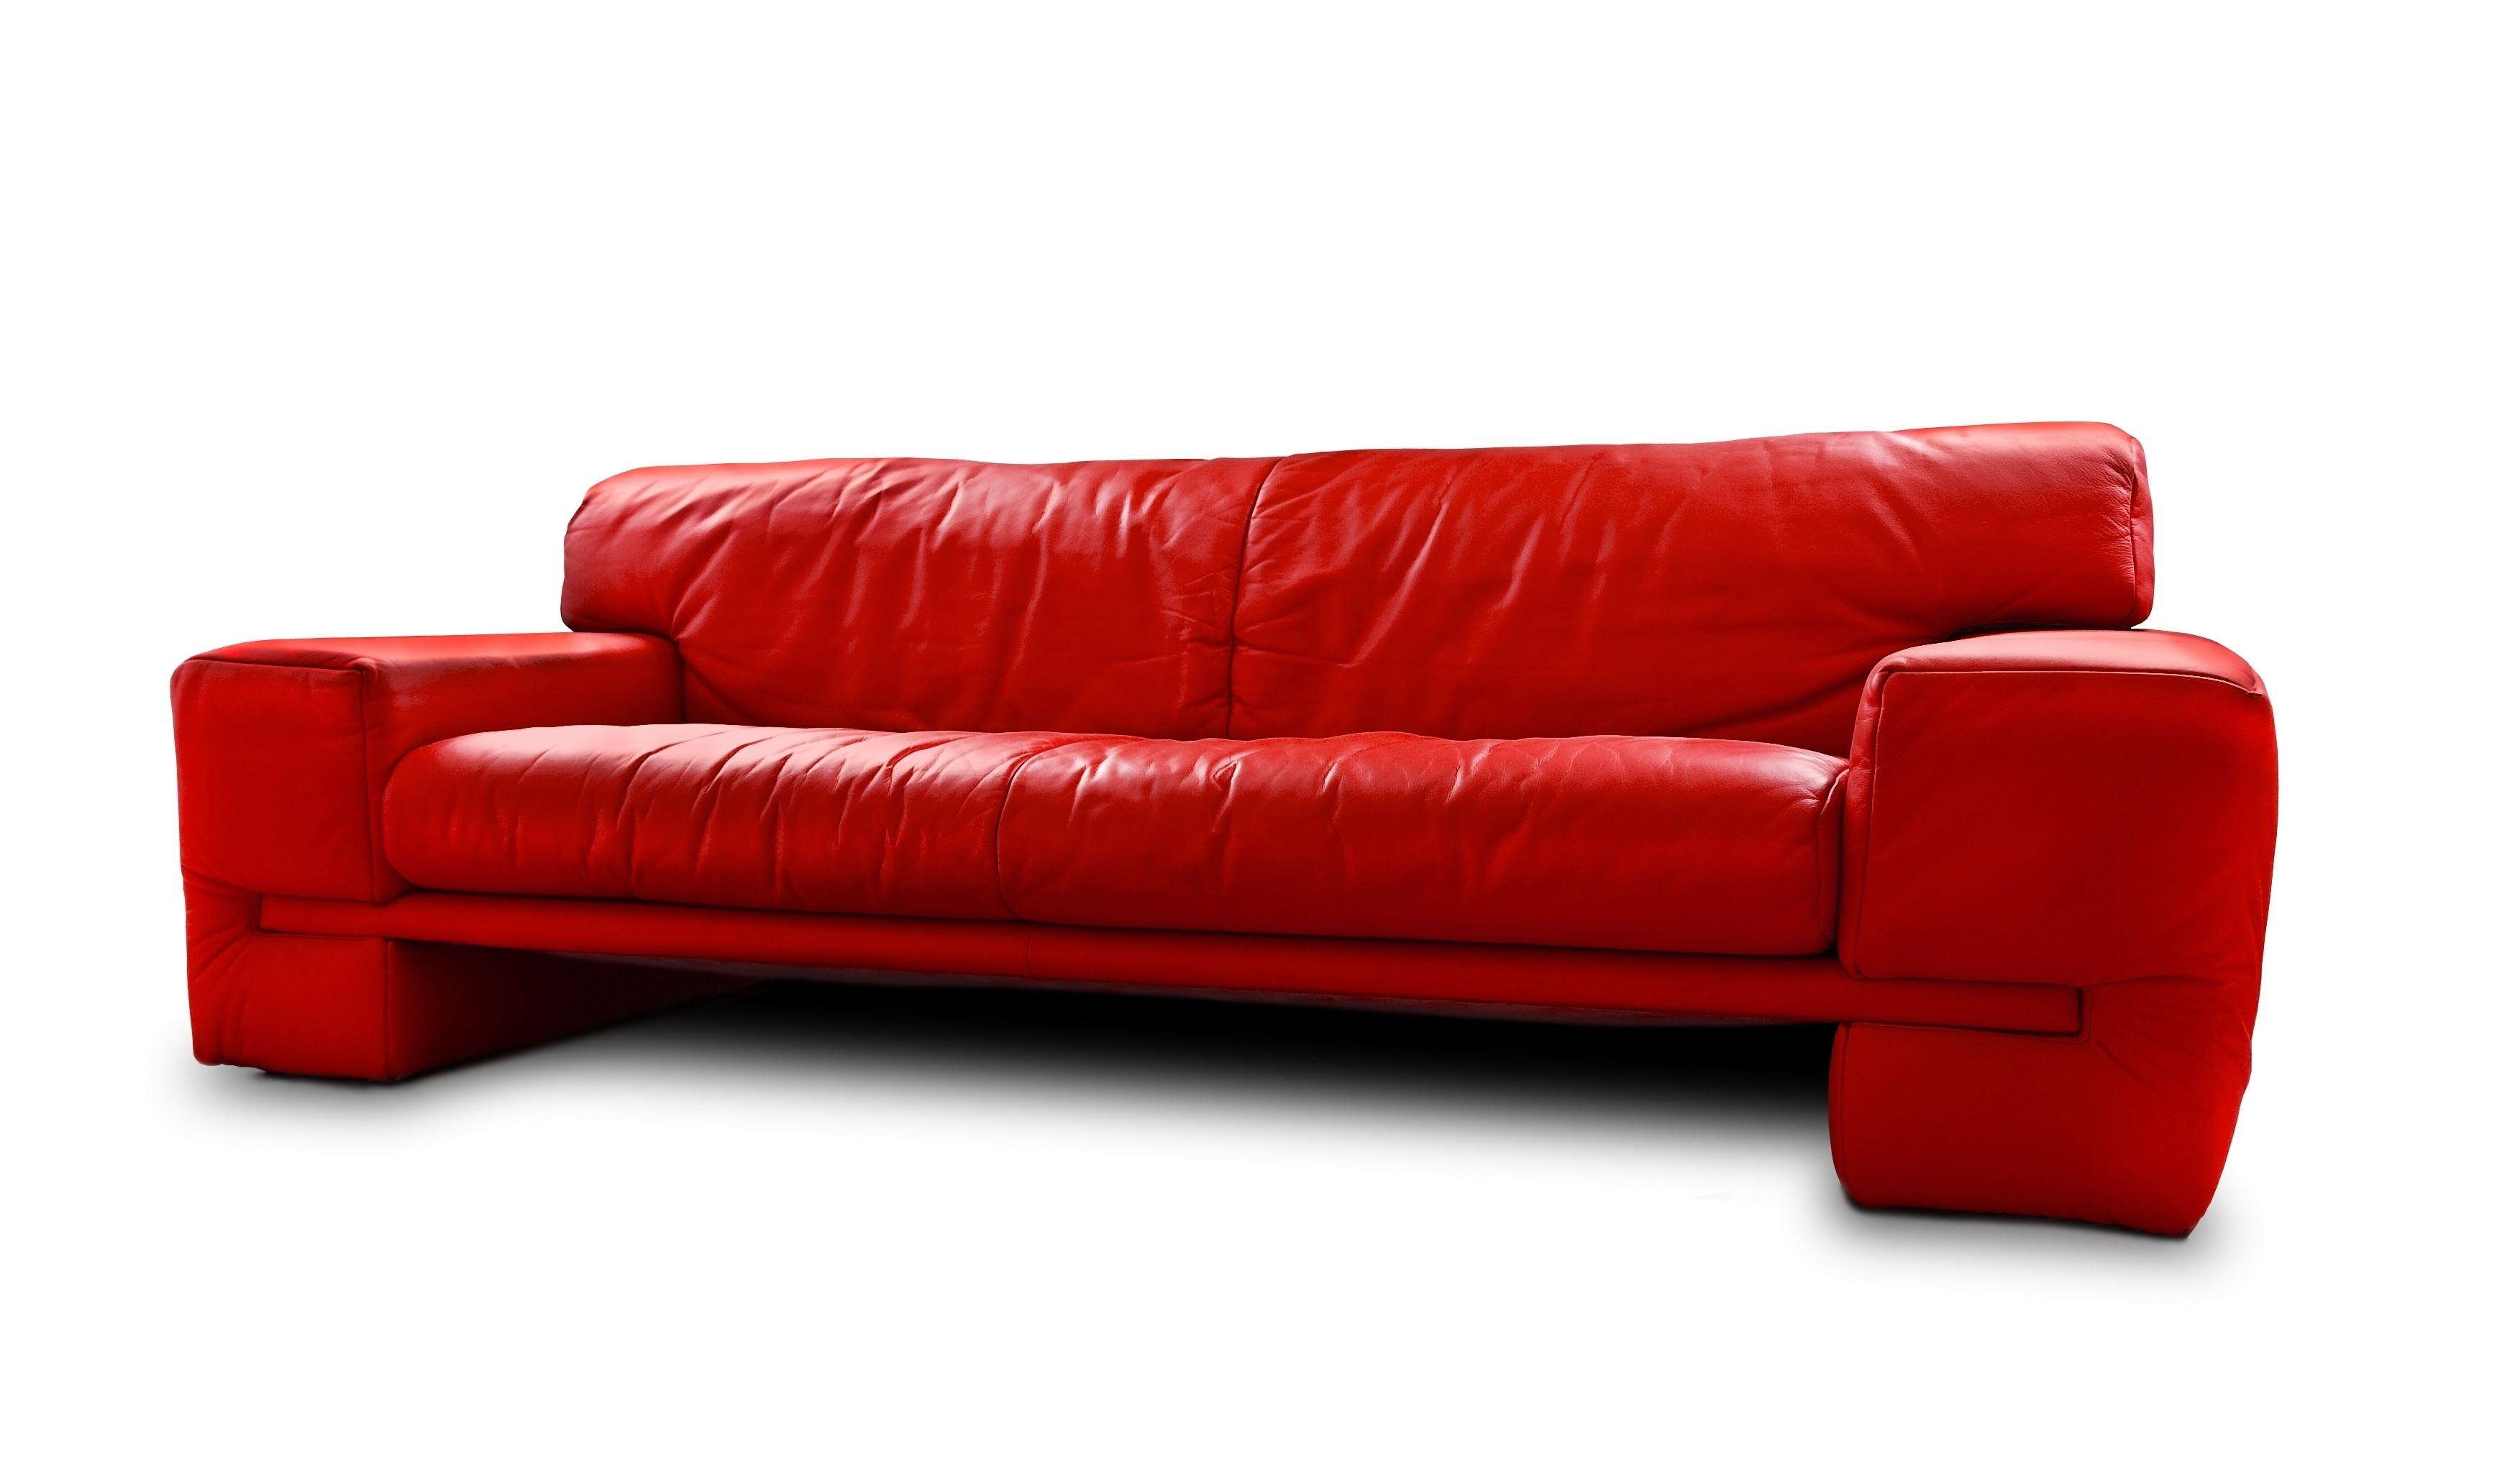 Captivating Red Leather Sleeper Sofa Cool Home Furniture Ideas With With Regard To Red Sleeper Sofas (View 8 of 12)